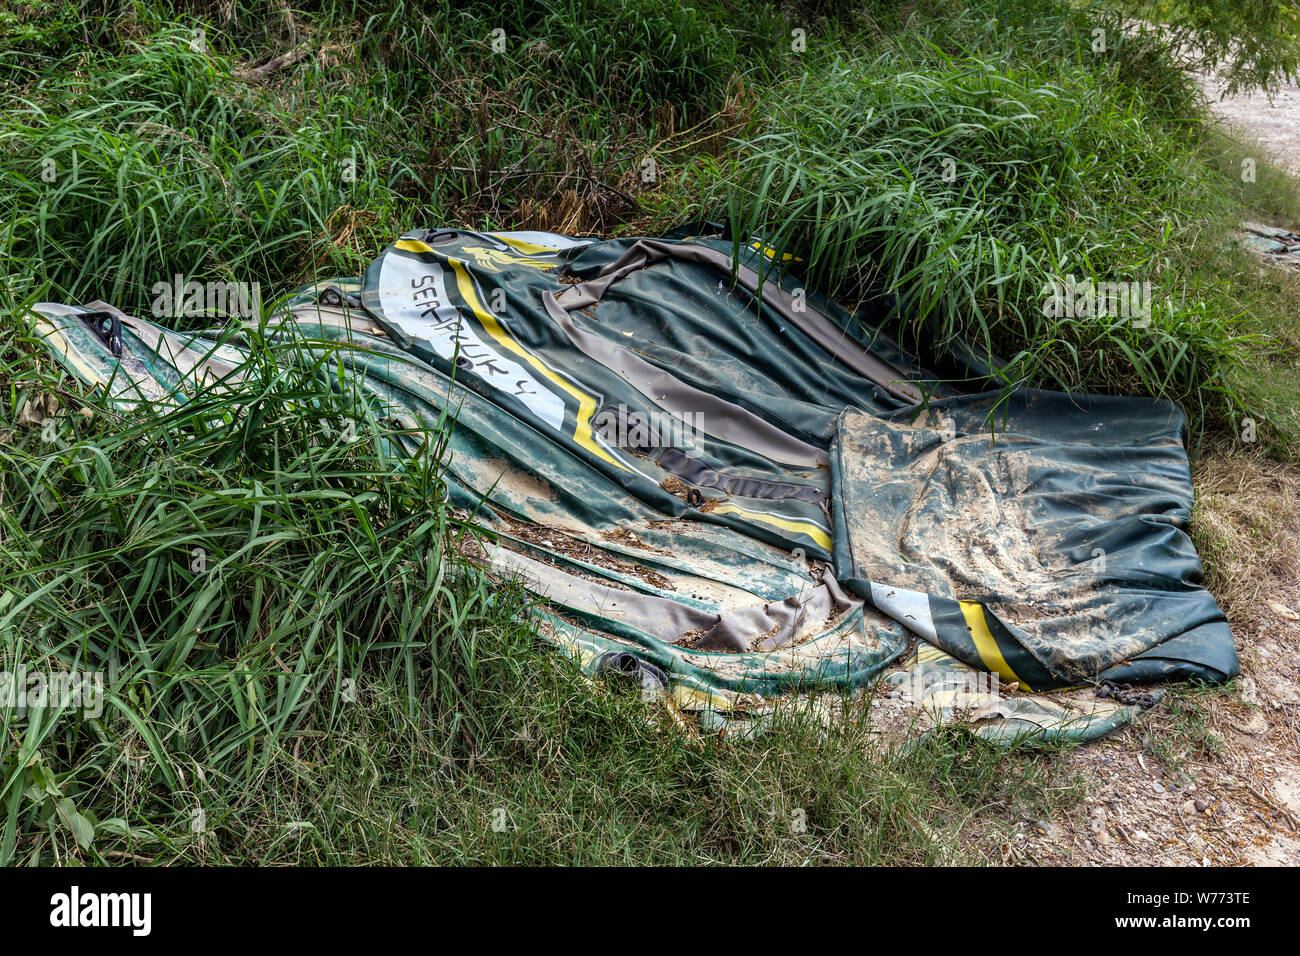 Discarded rafts used by migrants to cross the Rio Grande River  can be found on the shore of the Rio Grande, Roma, Texas, USA. Stock Photo